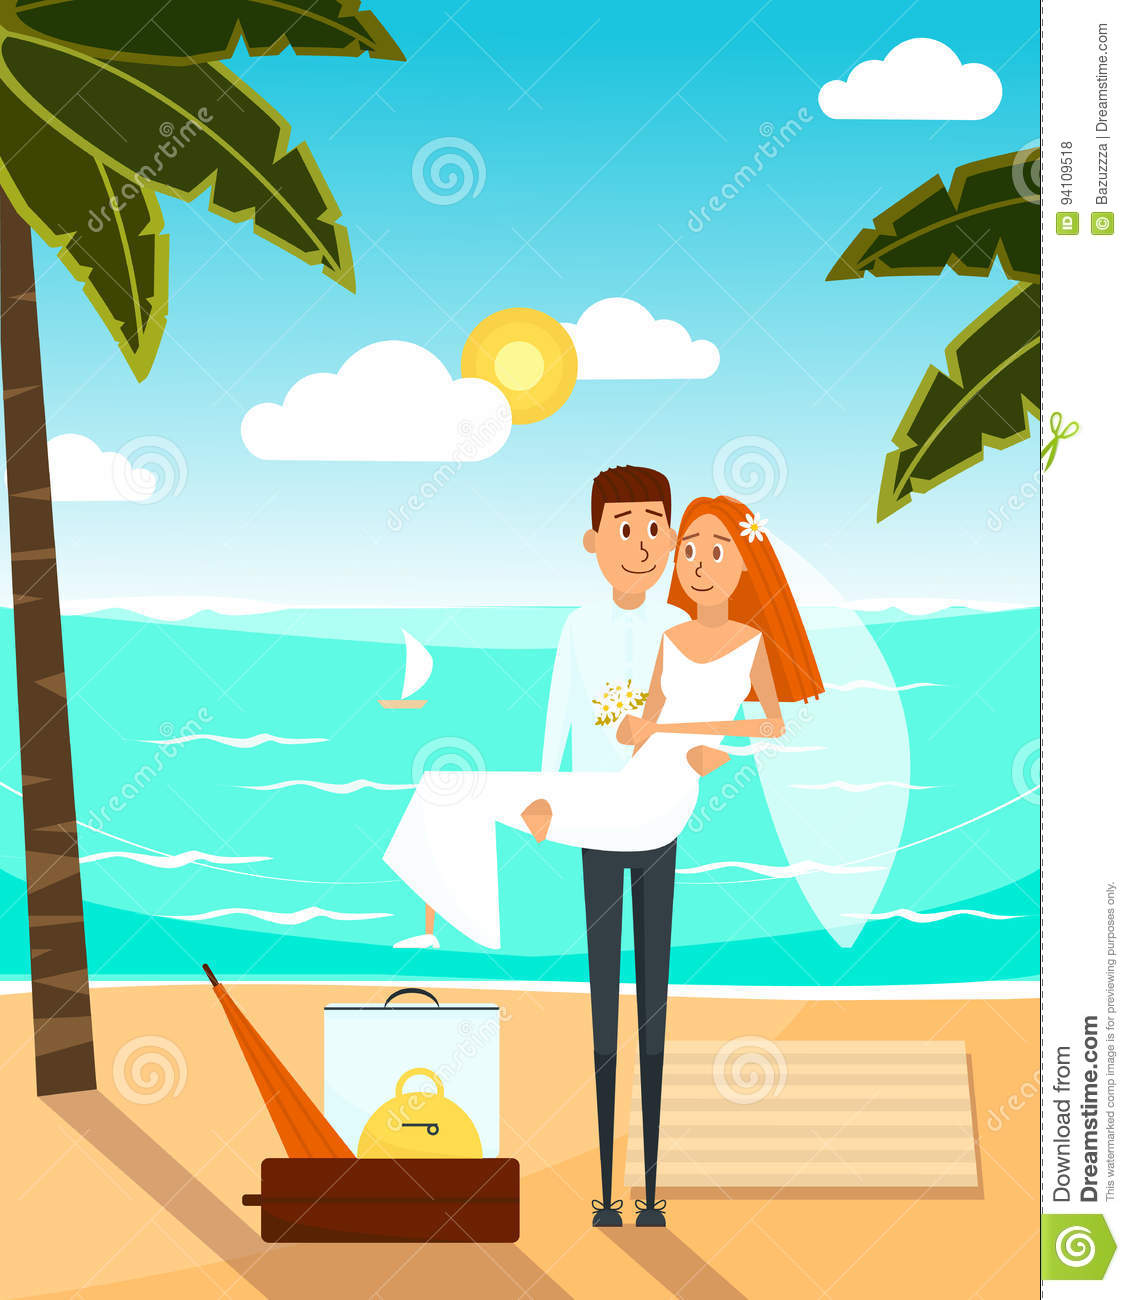 Just married couple went to the beach after wedding. Honeymoon vacation concept poster. Vector illustration with cartoon